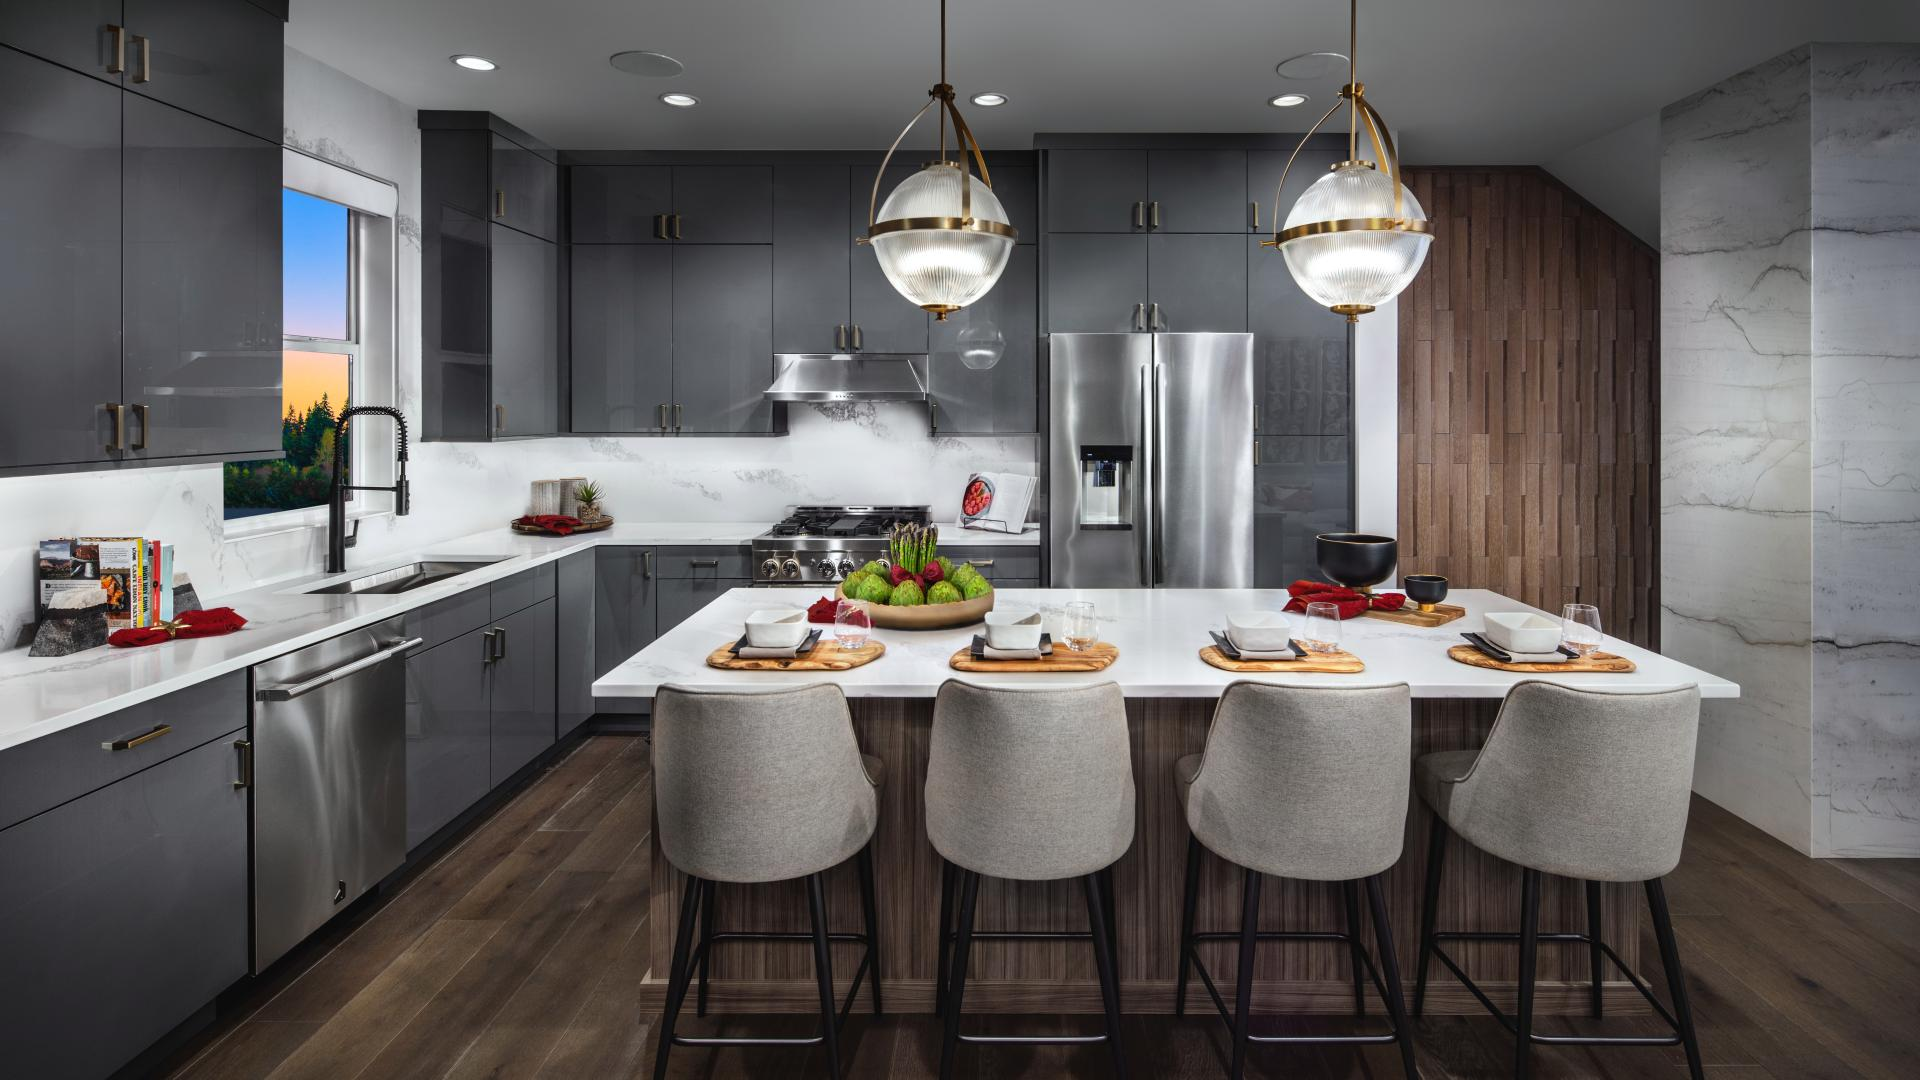 Create a show-stopping kitchen with the help of our designers at the Design Studio